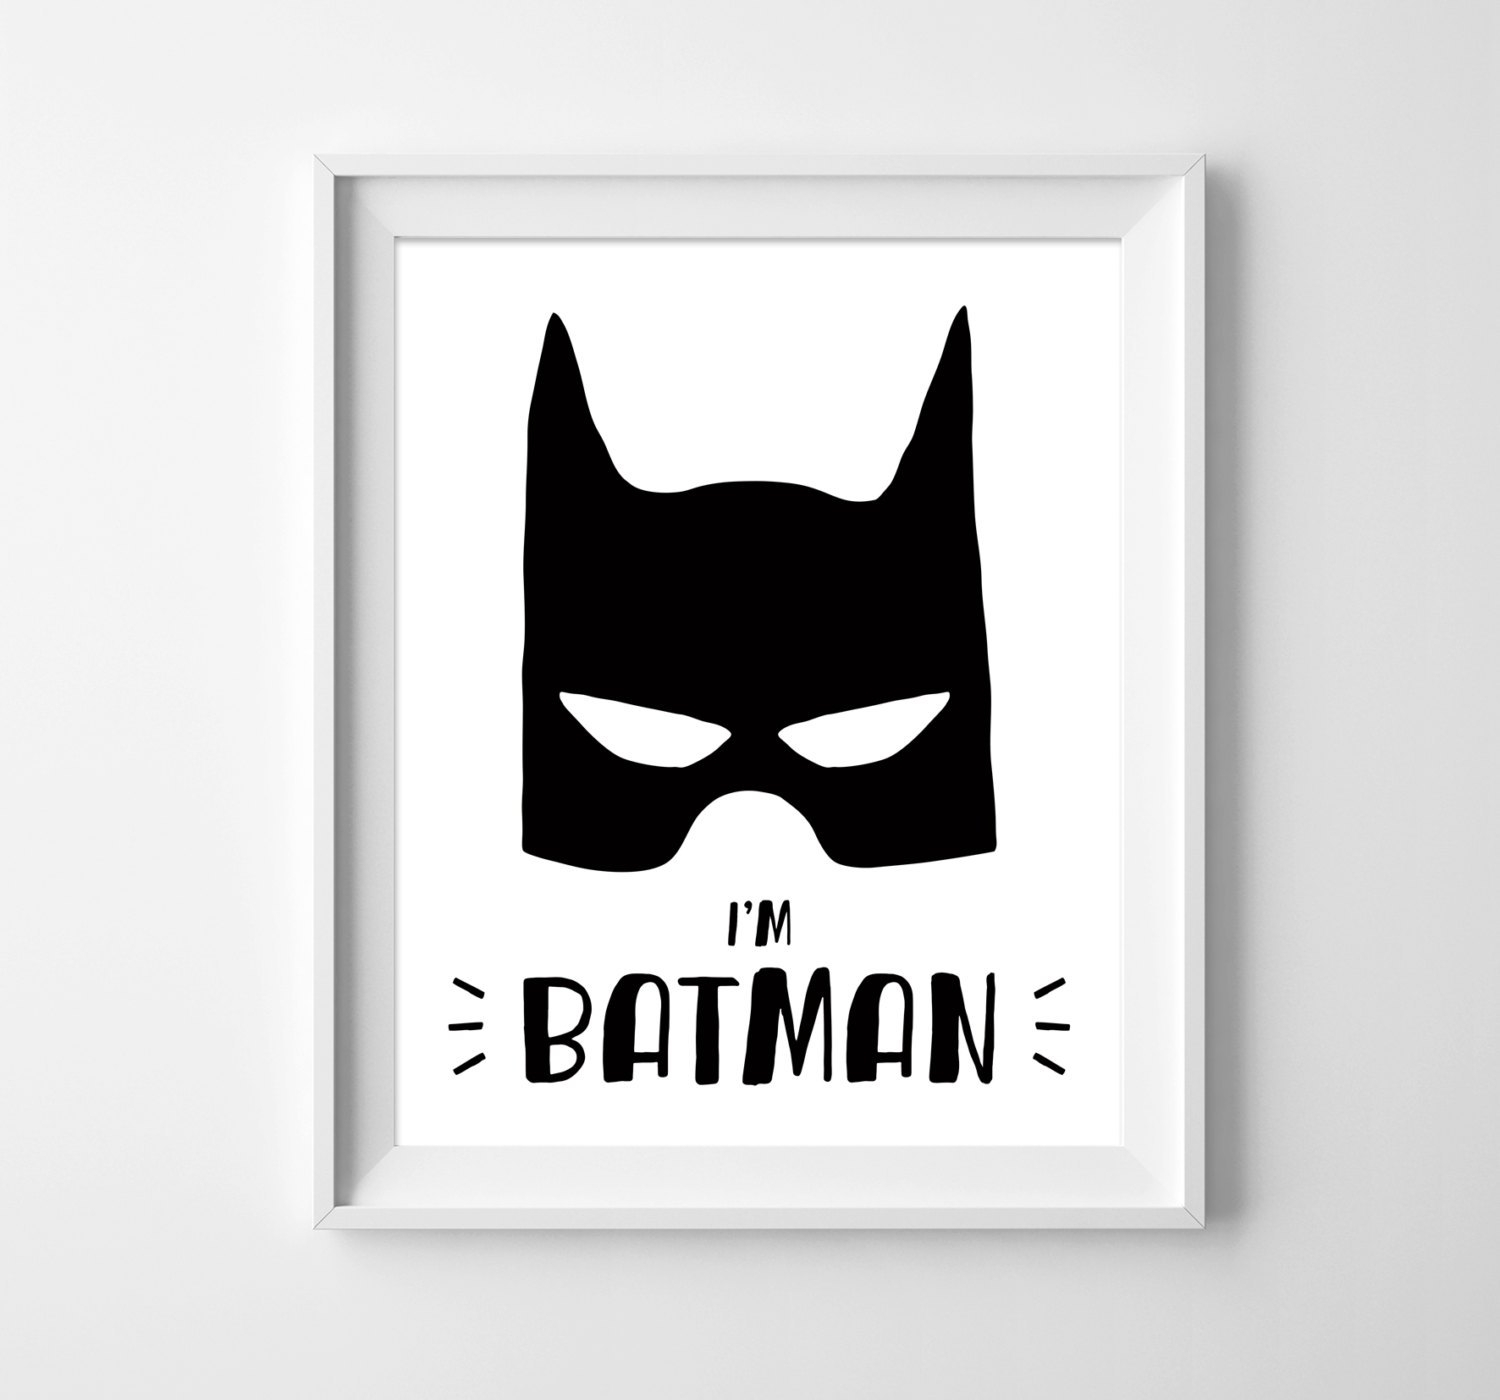 Amazing Dc Comics Wall Art Batman Decor Superhero Poster Nerdy Pic Within Best And Newest Batman Wall Art (View 15 of 20)